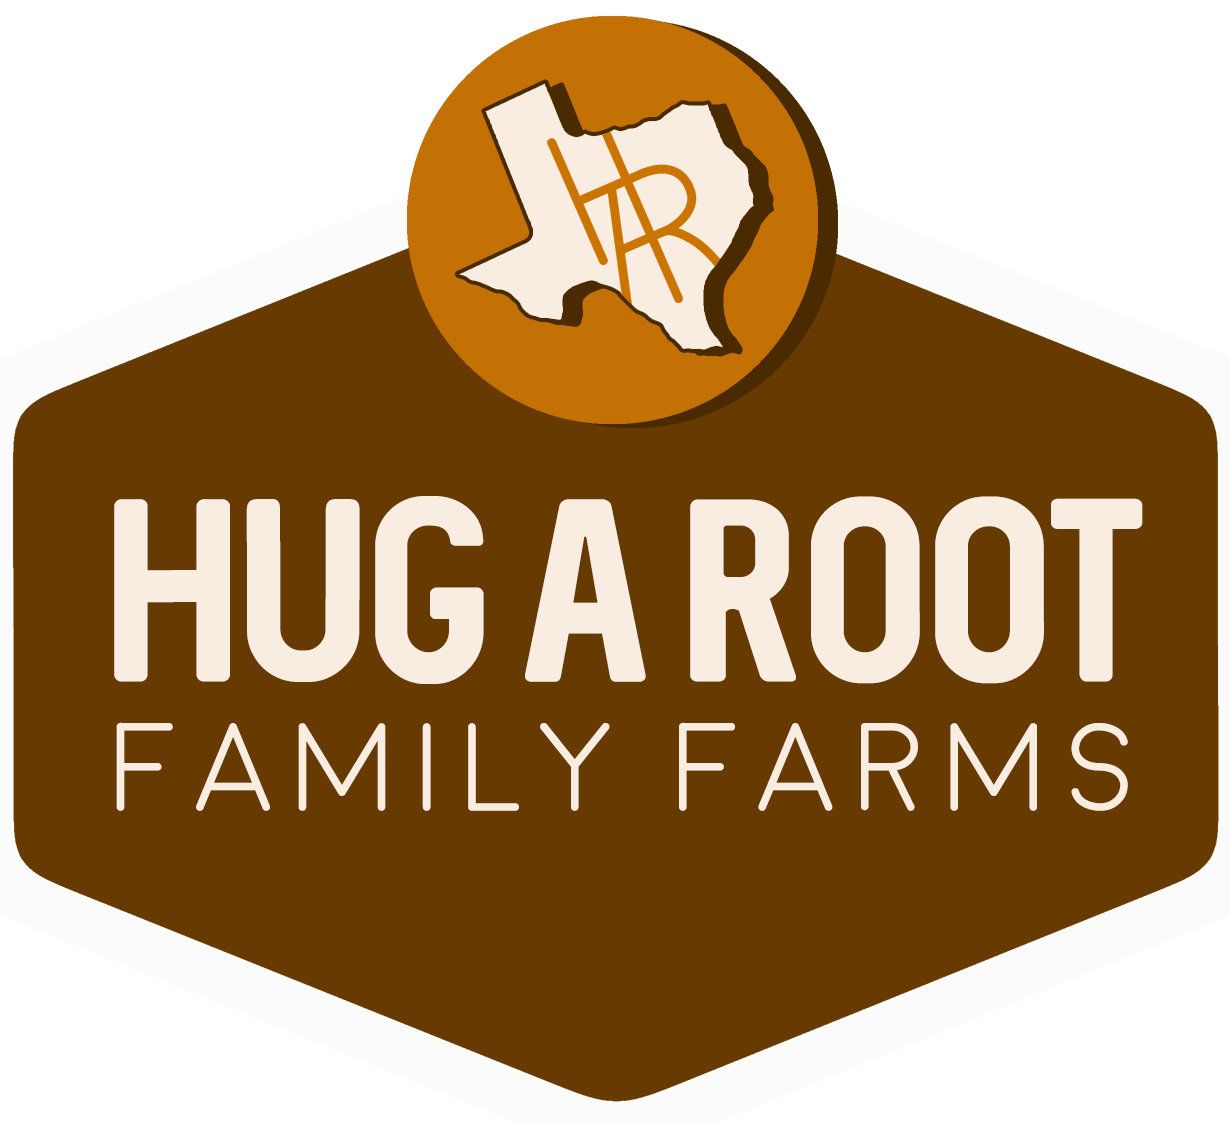 Hug-A-Root Family Farms